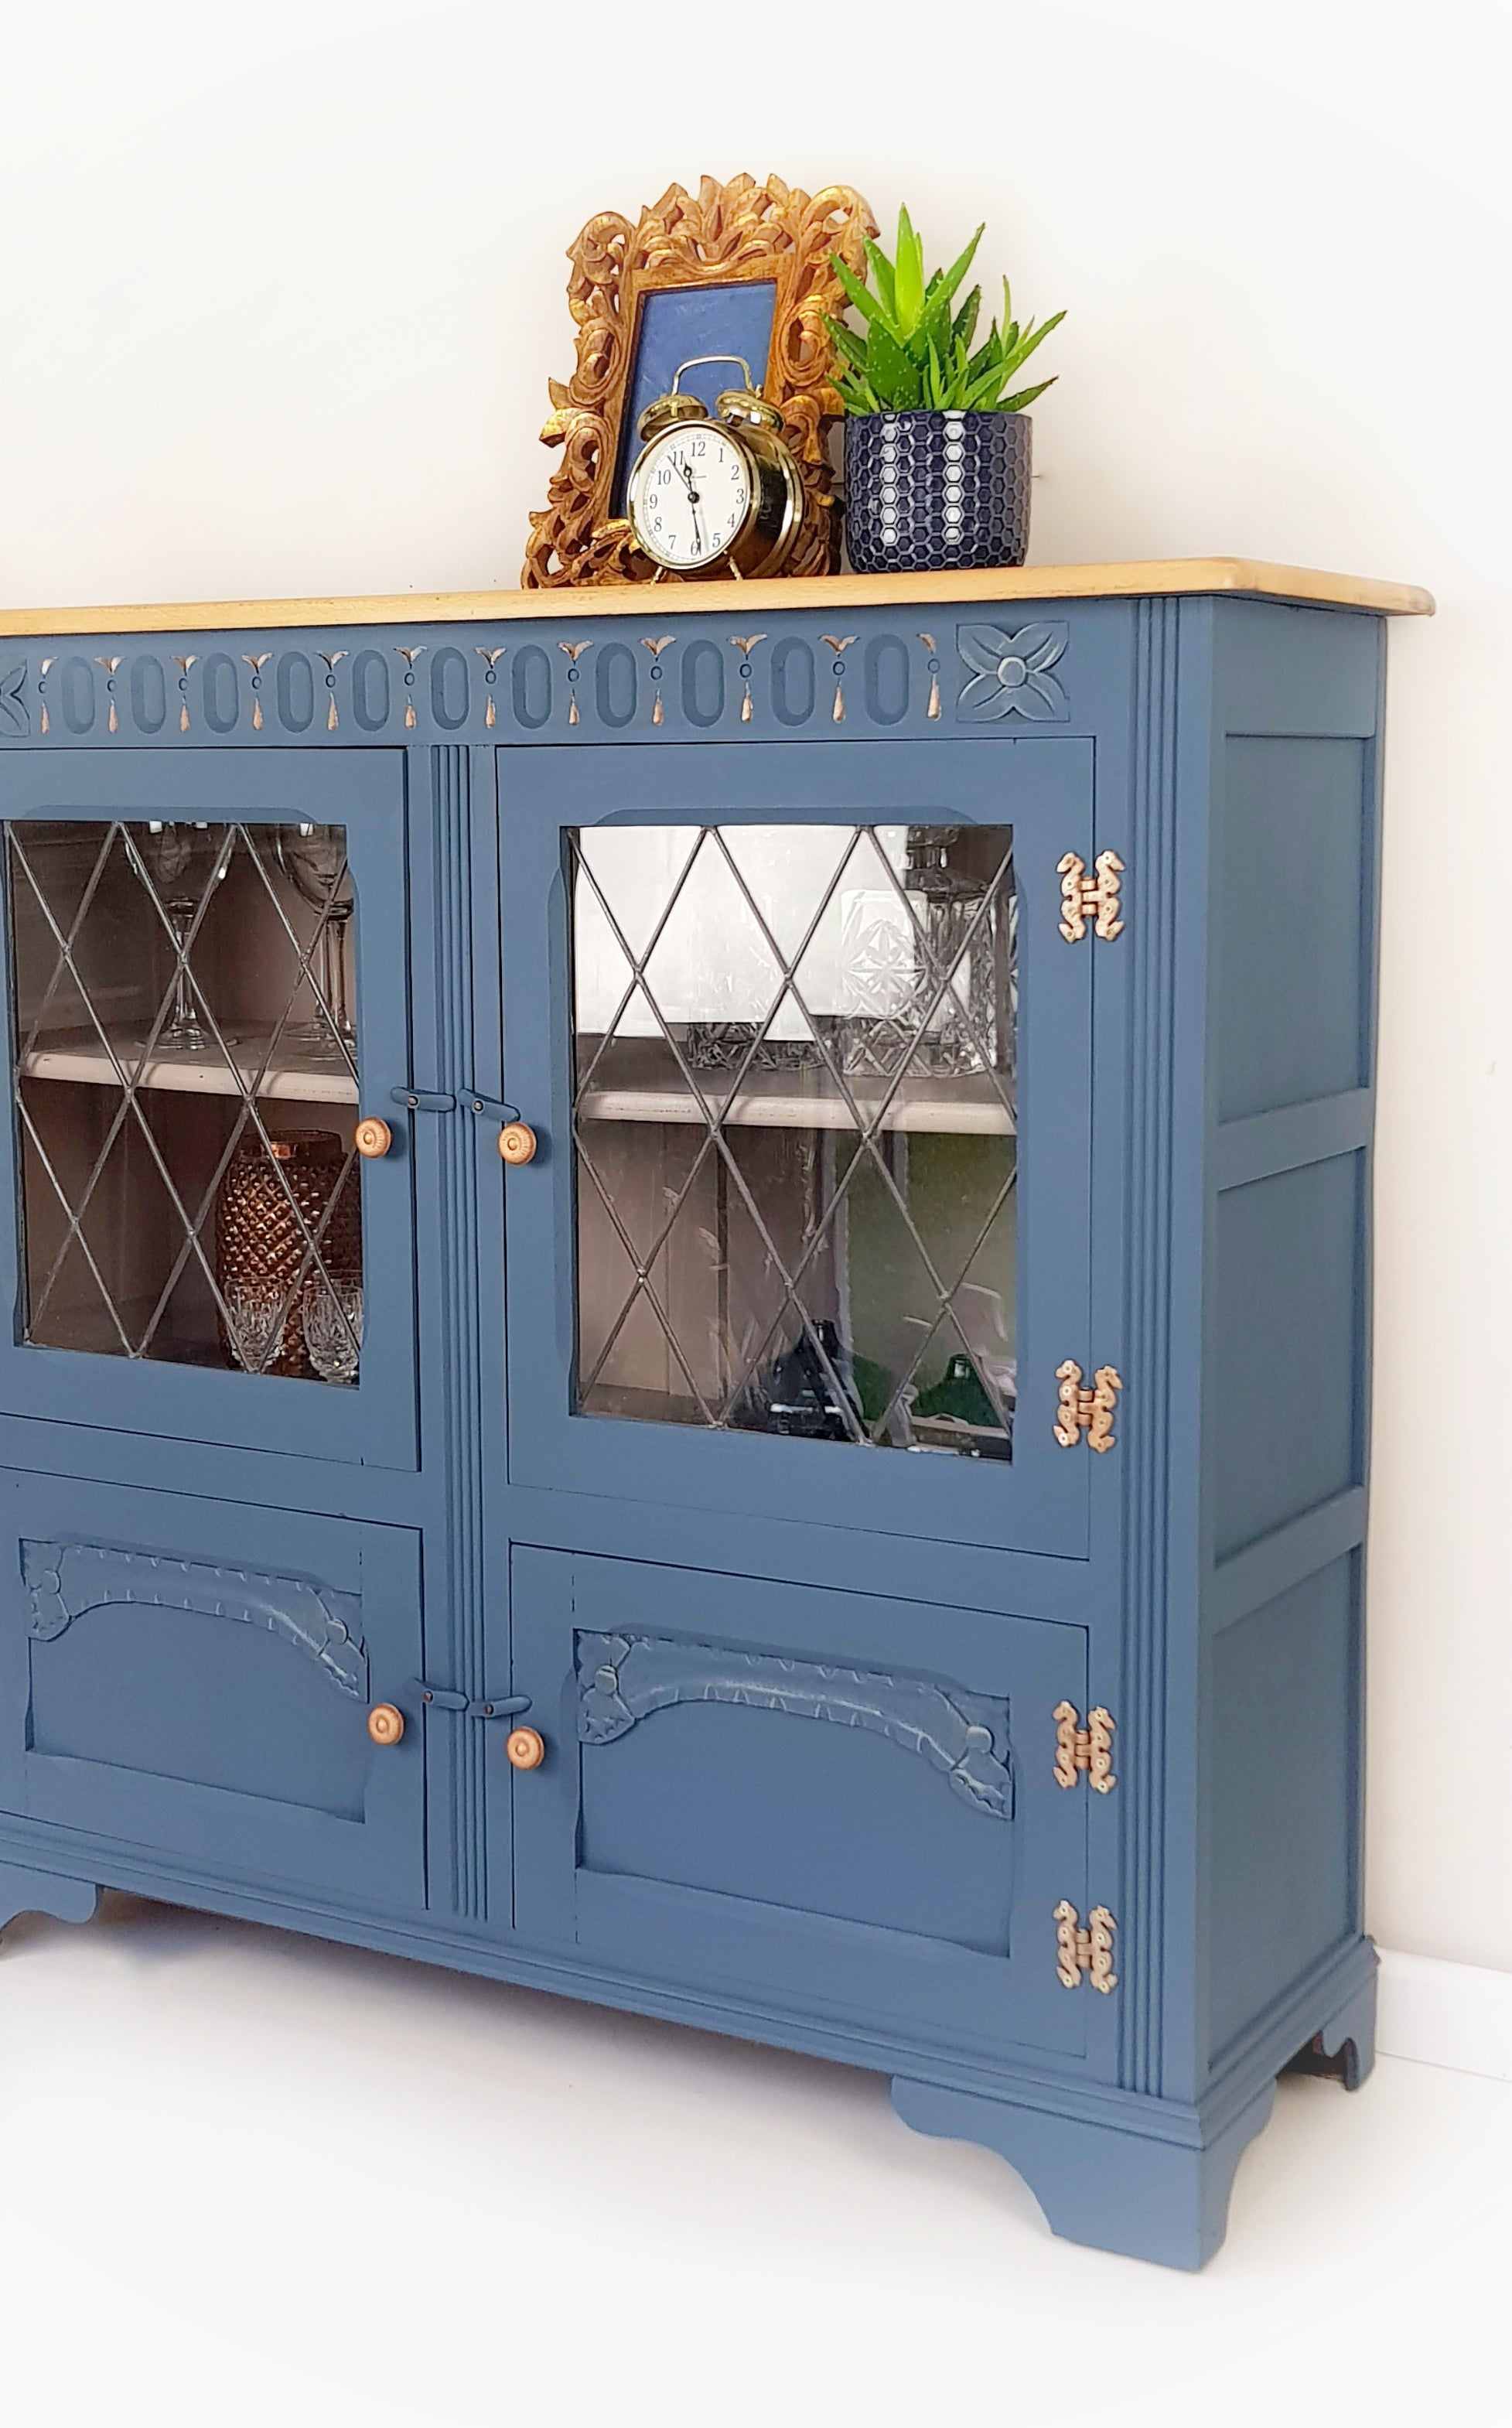 Vintage display cabinet, Vintage drinks cabinet in blue - Caramel Treasures